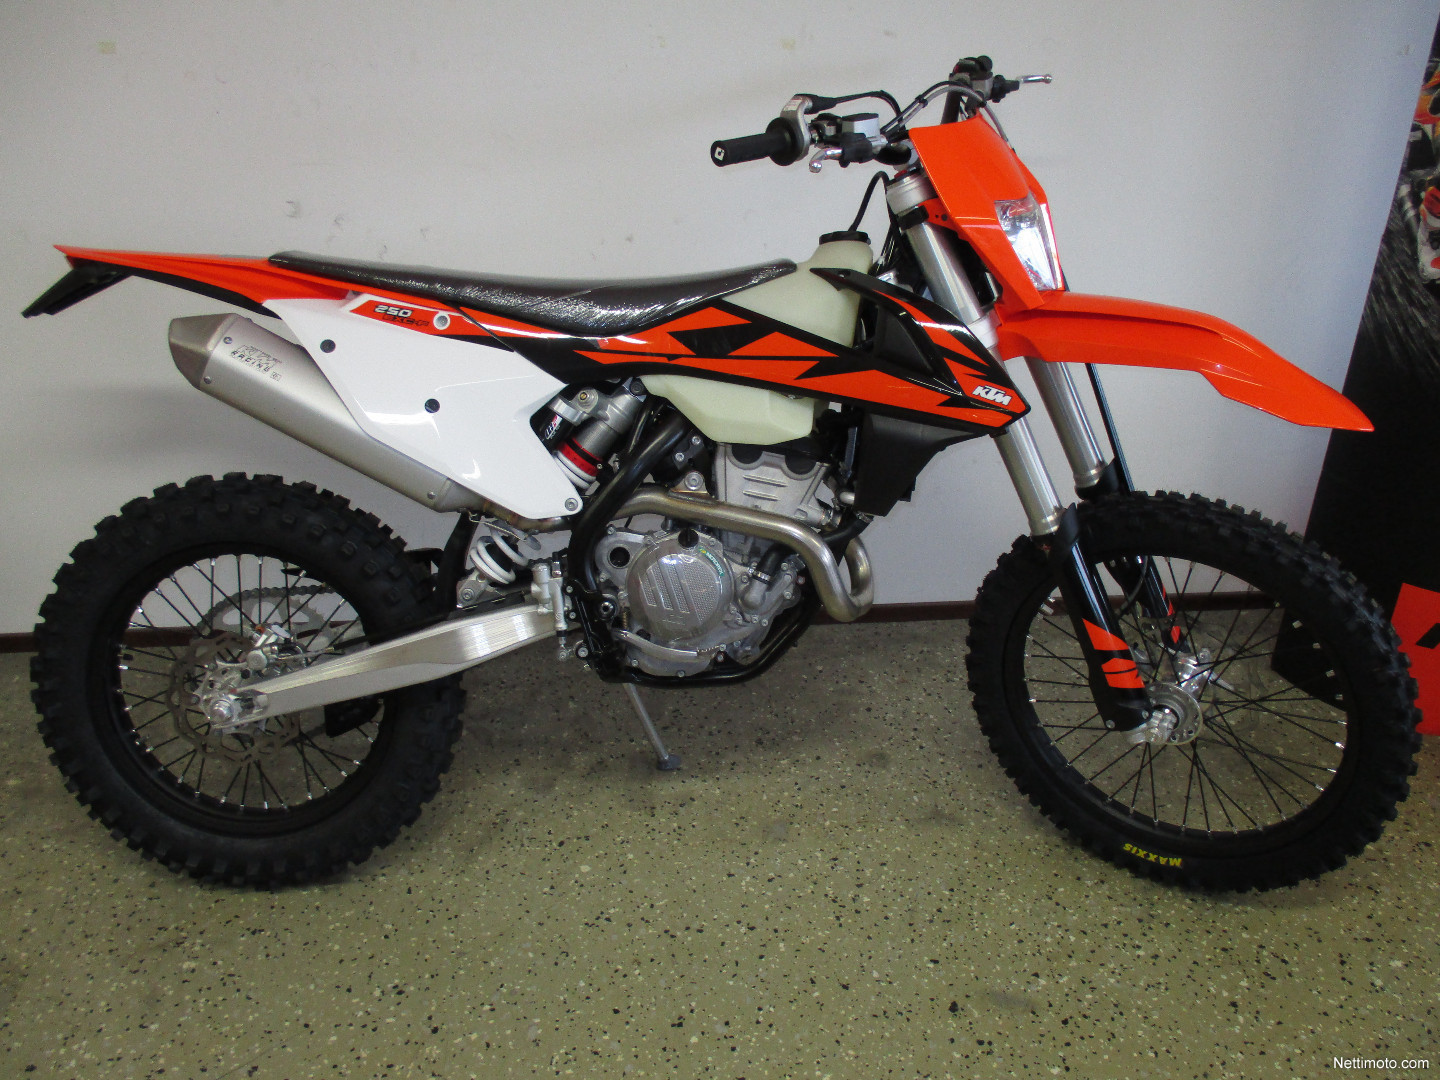 Motorcycle Irbis GR 250: photo, specifications, pros and cons, reviews 31